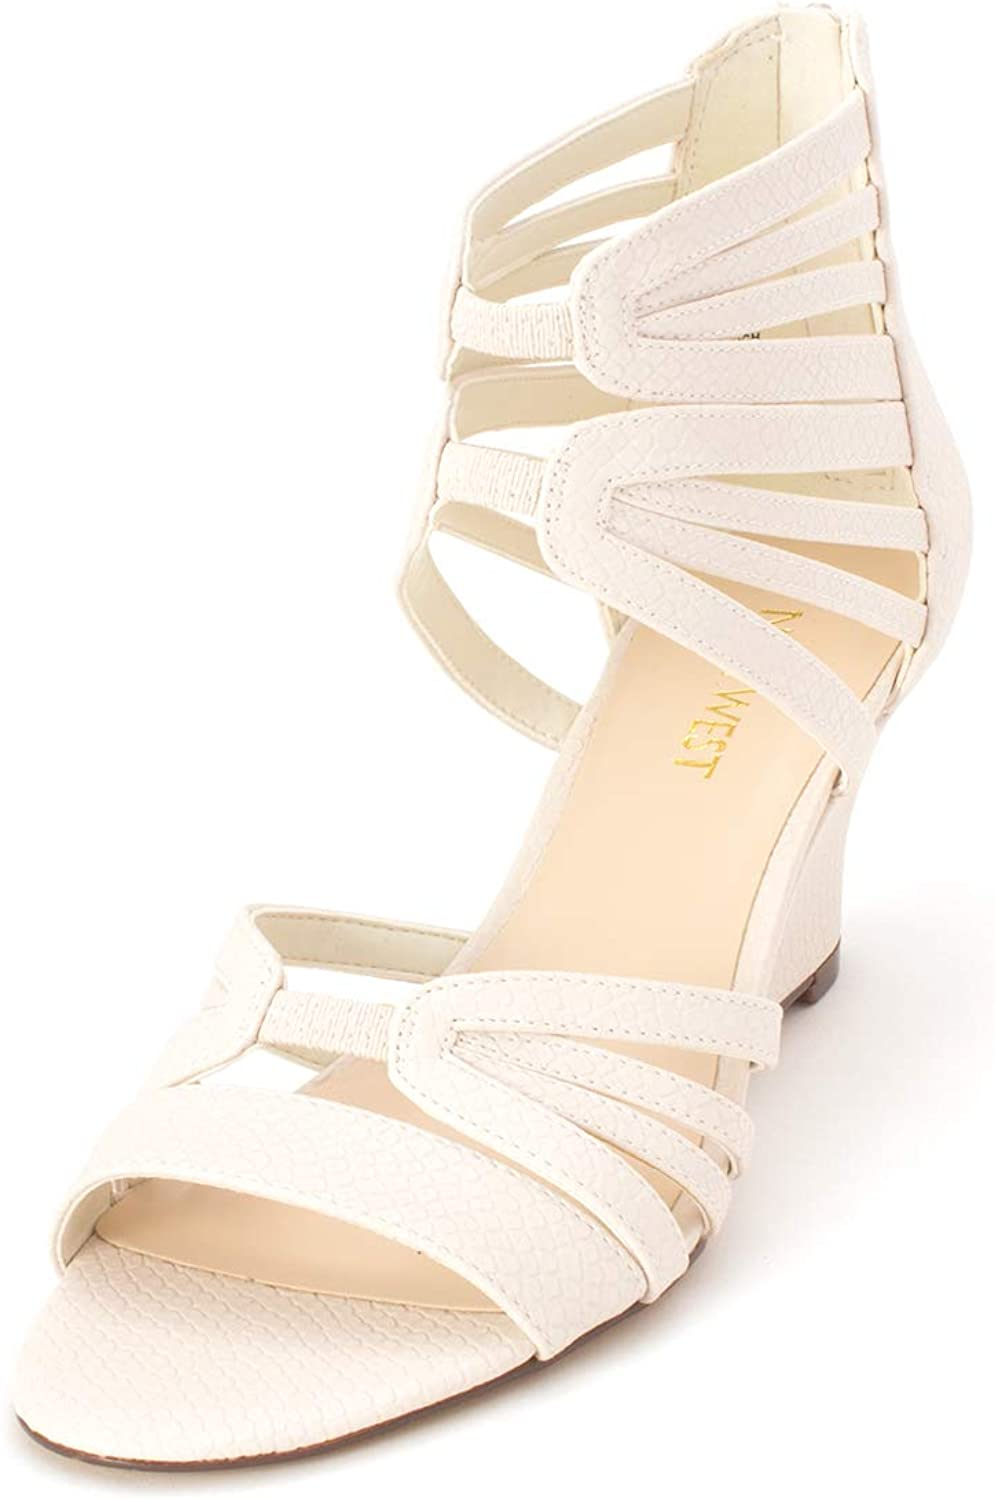 Nine West Womens Raleigh Leather Open Toe Special Occasion Platform Sandals